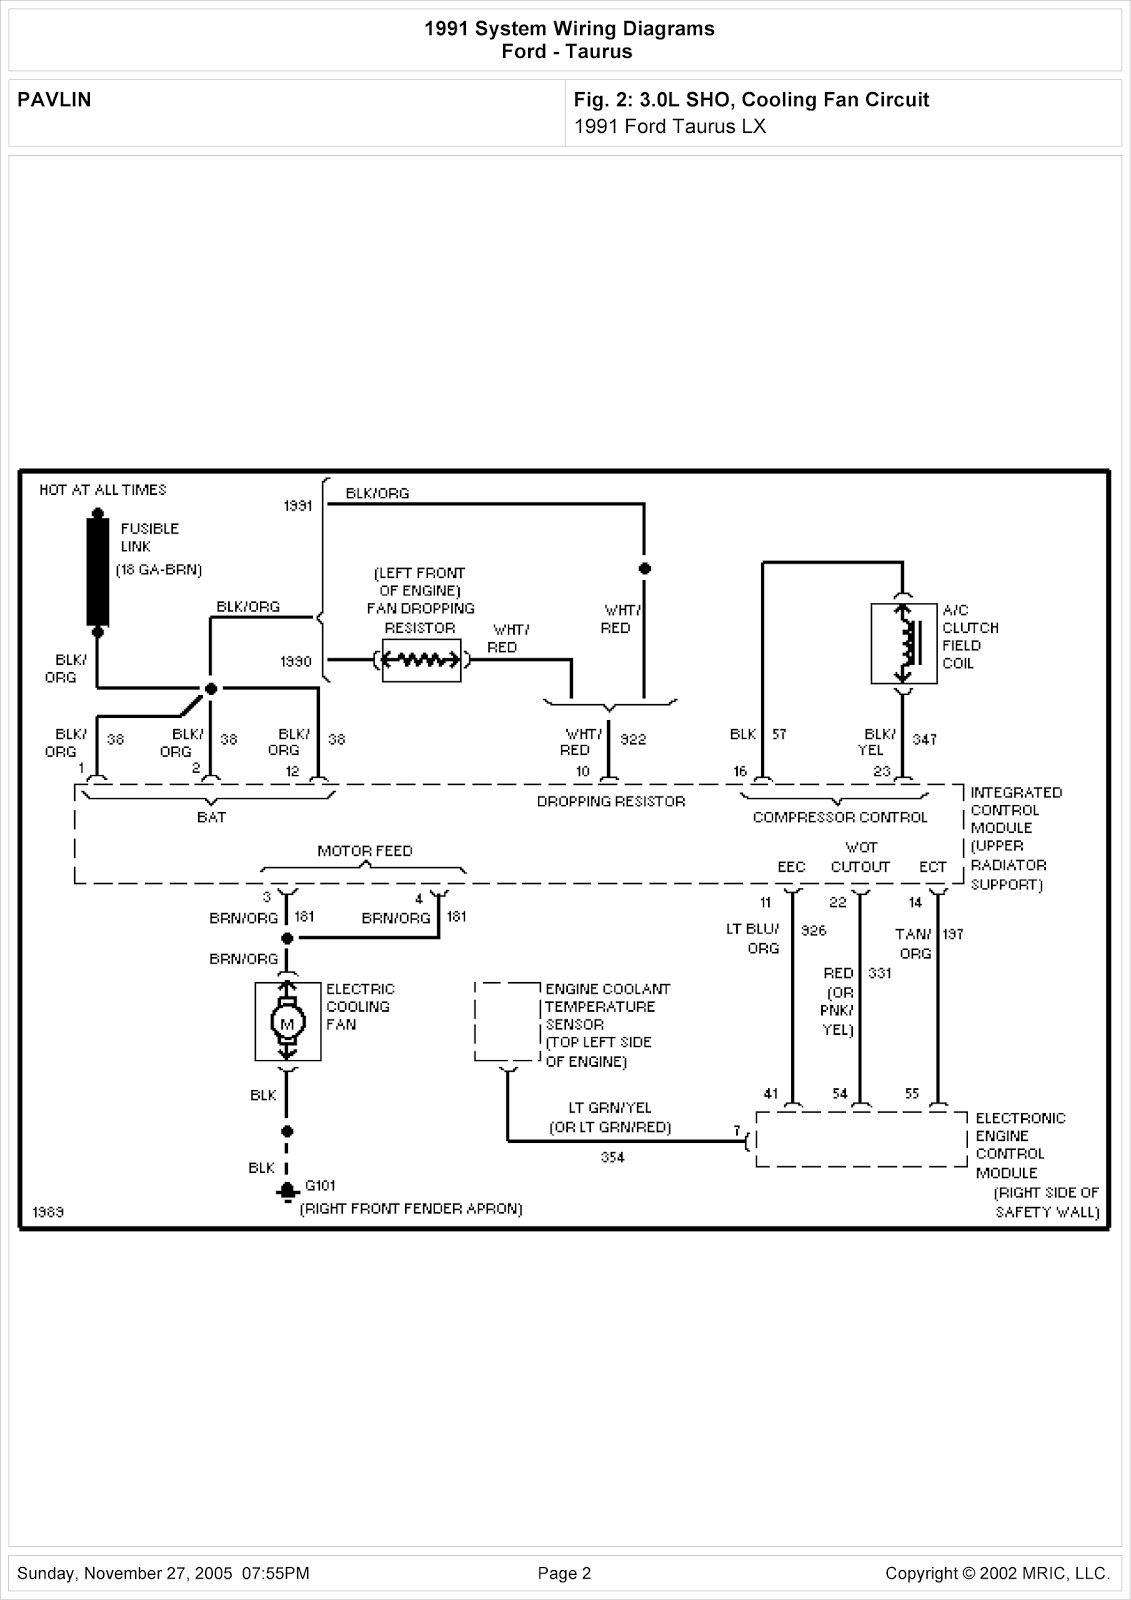 1999 Ford Taurus System Wiring Diagram cooling Fan Circuit